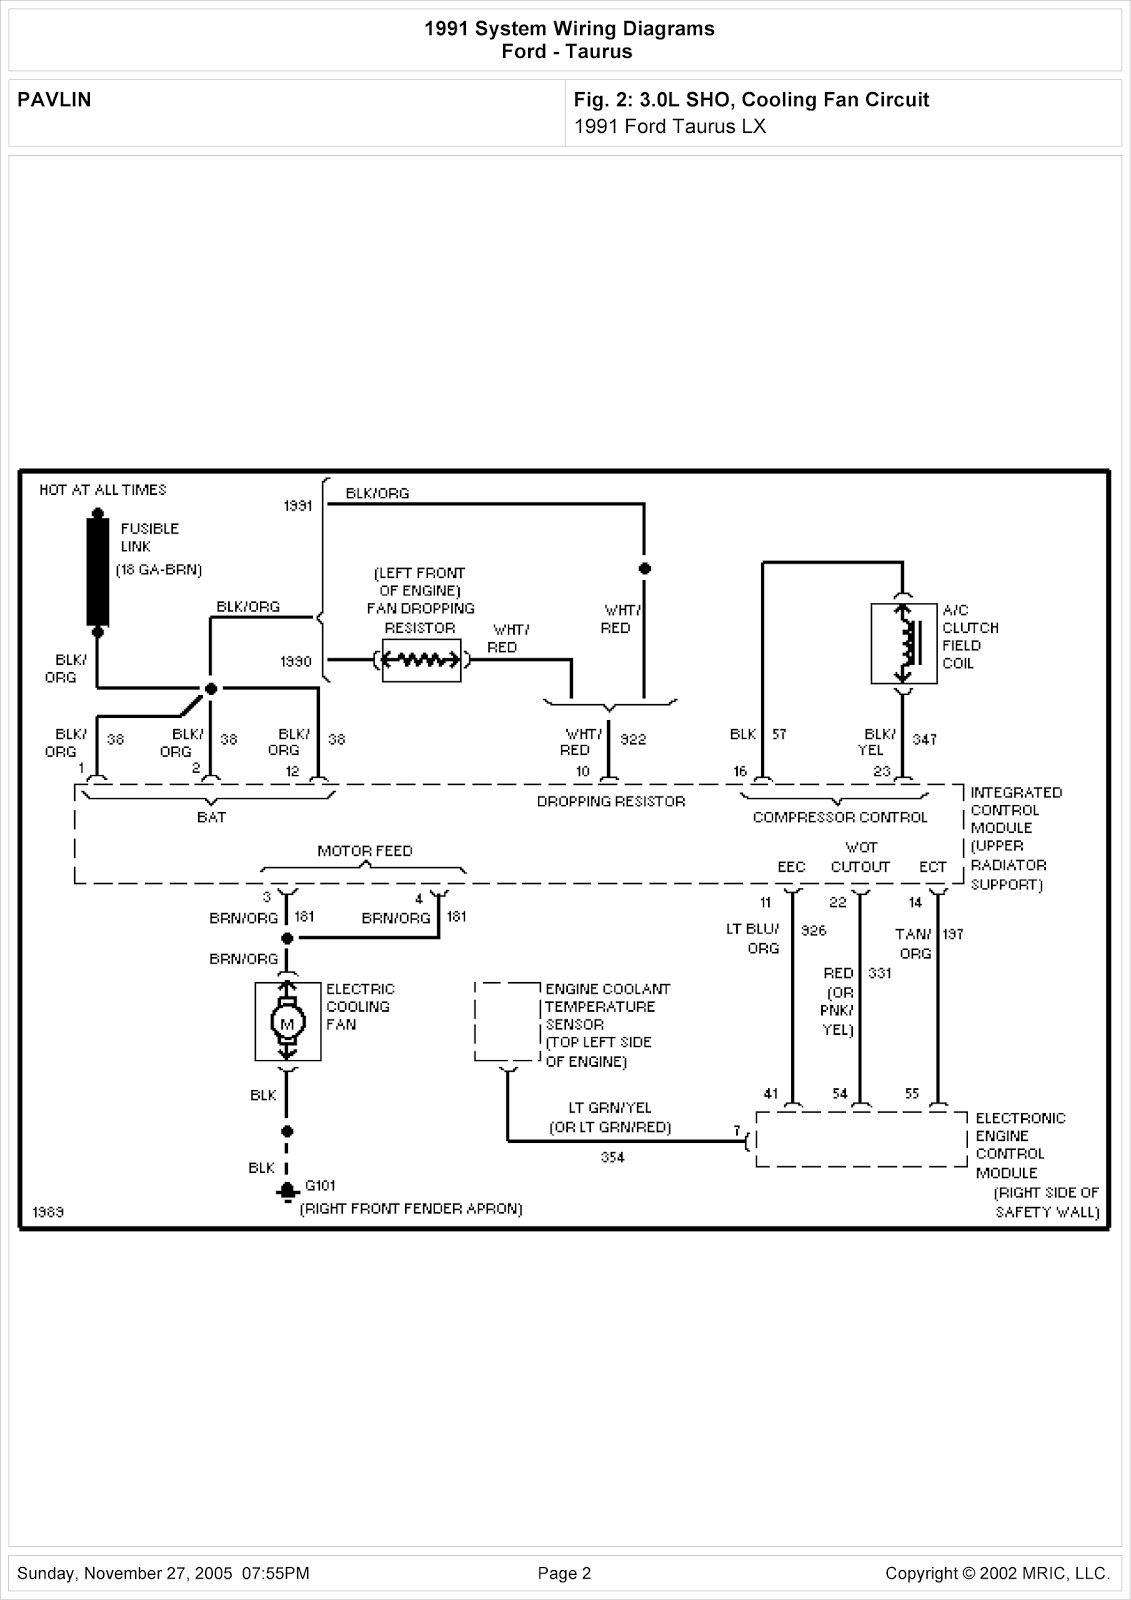 1999 Ford Taurus System Wiring Diagram cooling Fan Circuit